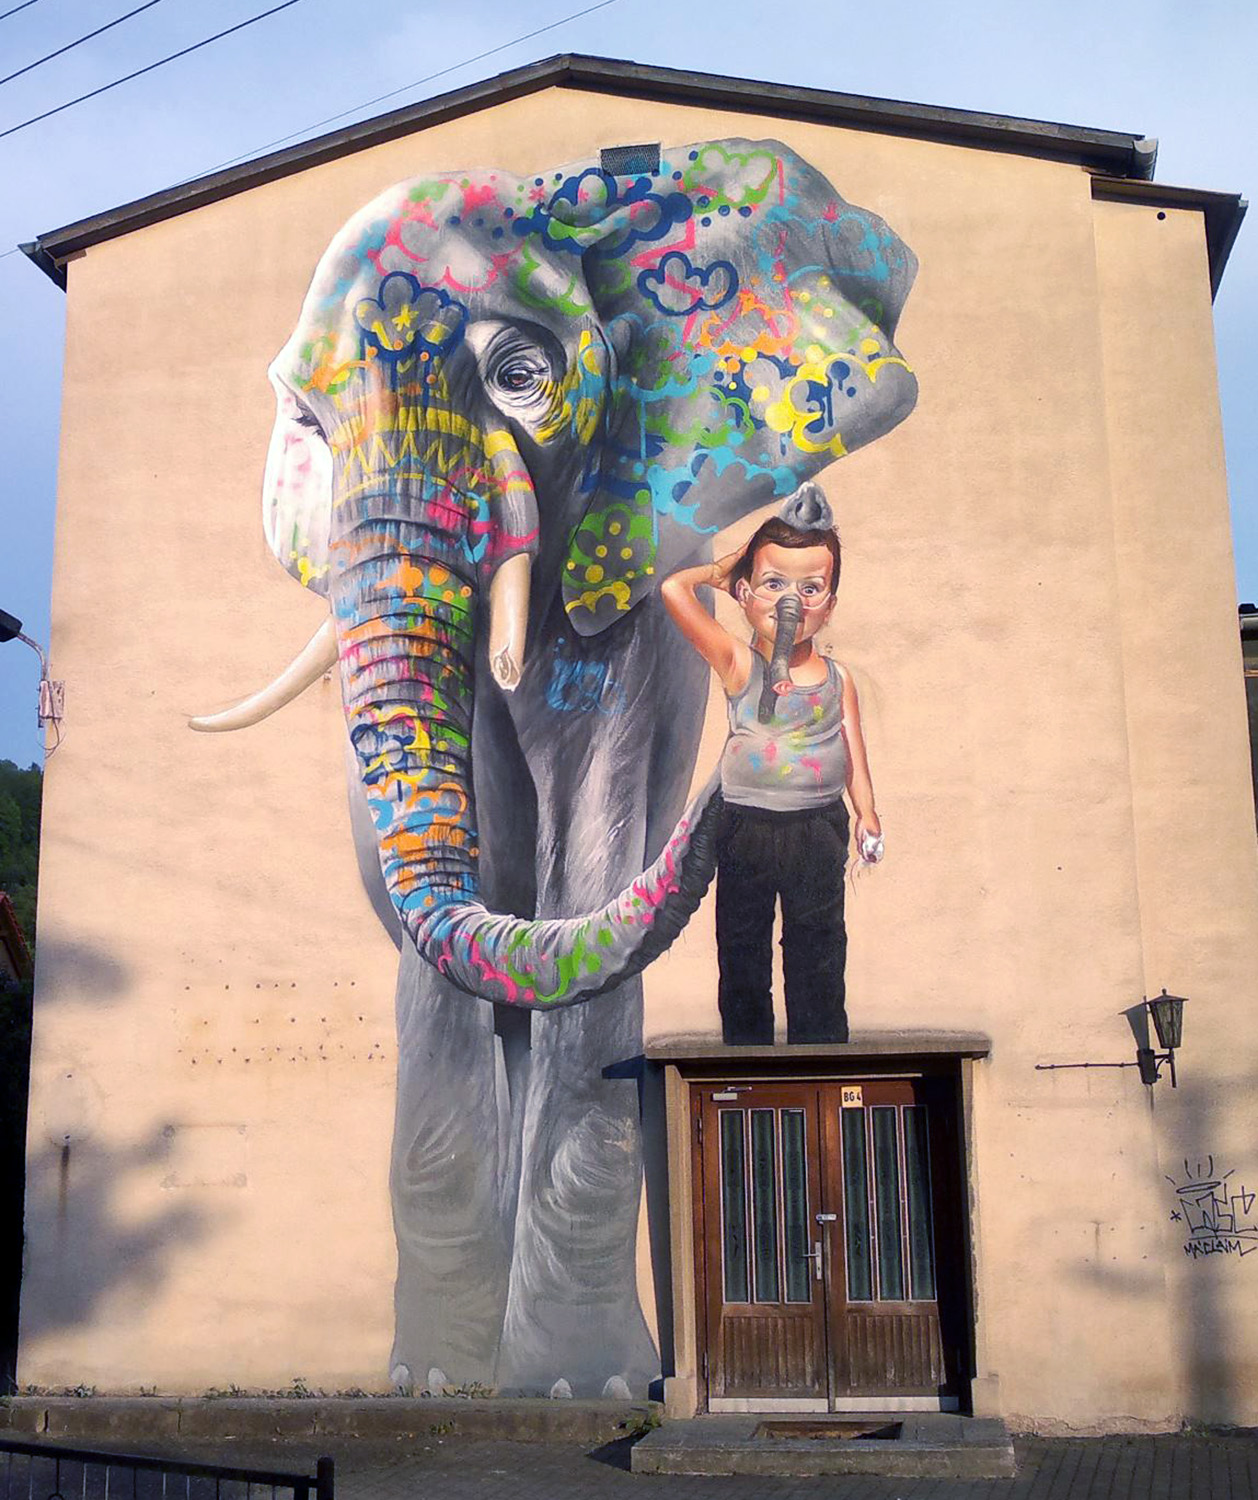 New case mural in schmalkalden germany gj project for Art mural painting